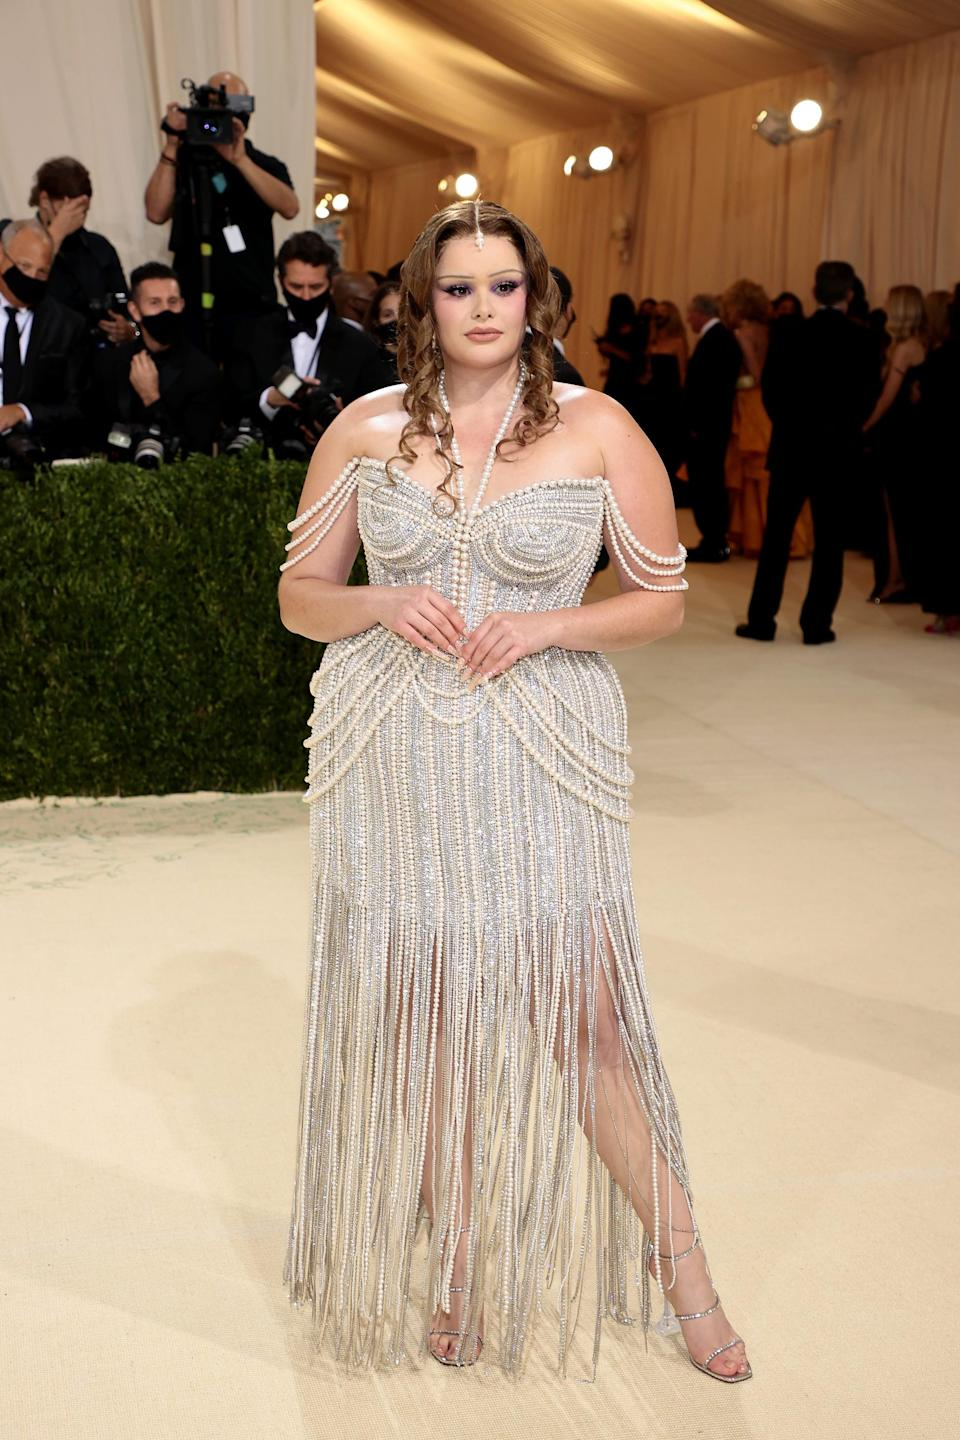 """<p>Barbie looked like a Met Gala pro in this <a href=""""https://www.popsugar.com/fashion/barbie-ferreira-at-the-met-gala-2021-48501972"""" class=""""link rapid-noclick-resp"""" rel=""""nofollow noopener"""" target=""""_blank"""" data-ylk=""""slk:pearl-covered Jonathan Simkhai confection"""">pearl-covered Jonathan Simkhai confection</a>.</p>"""